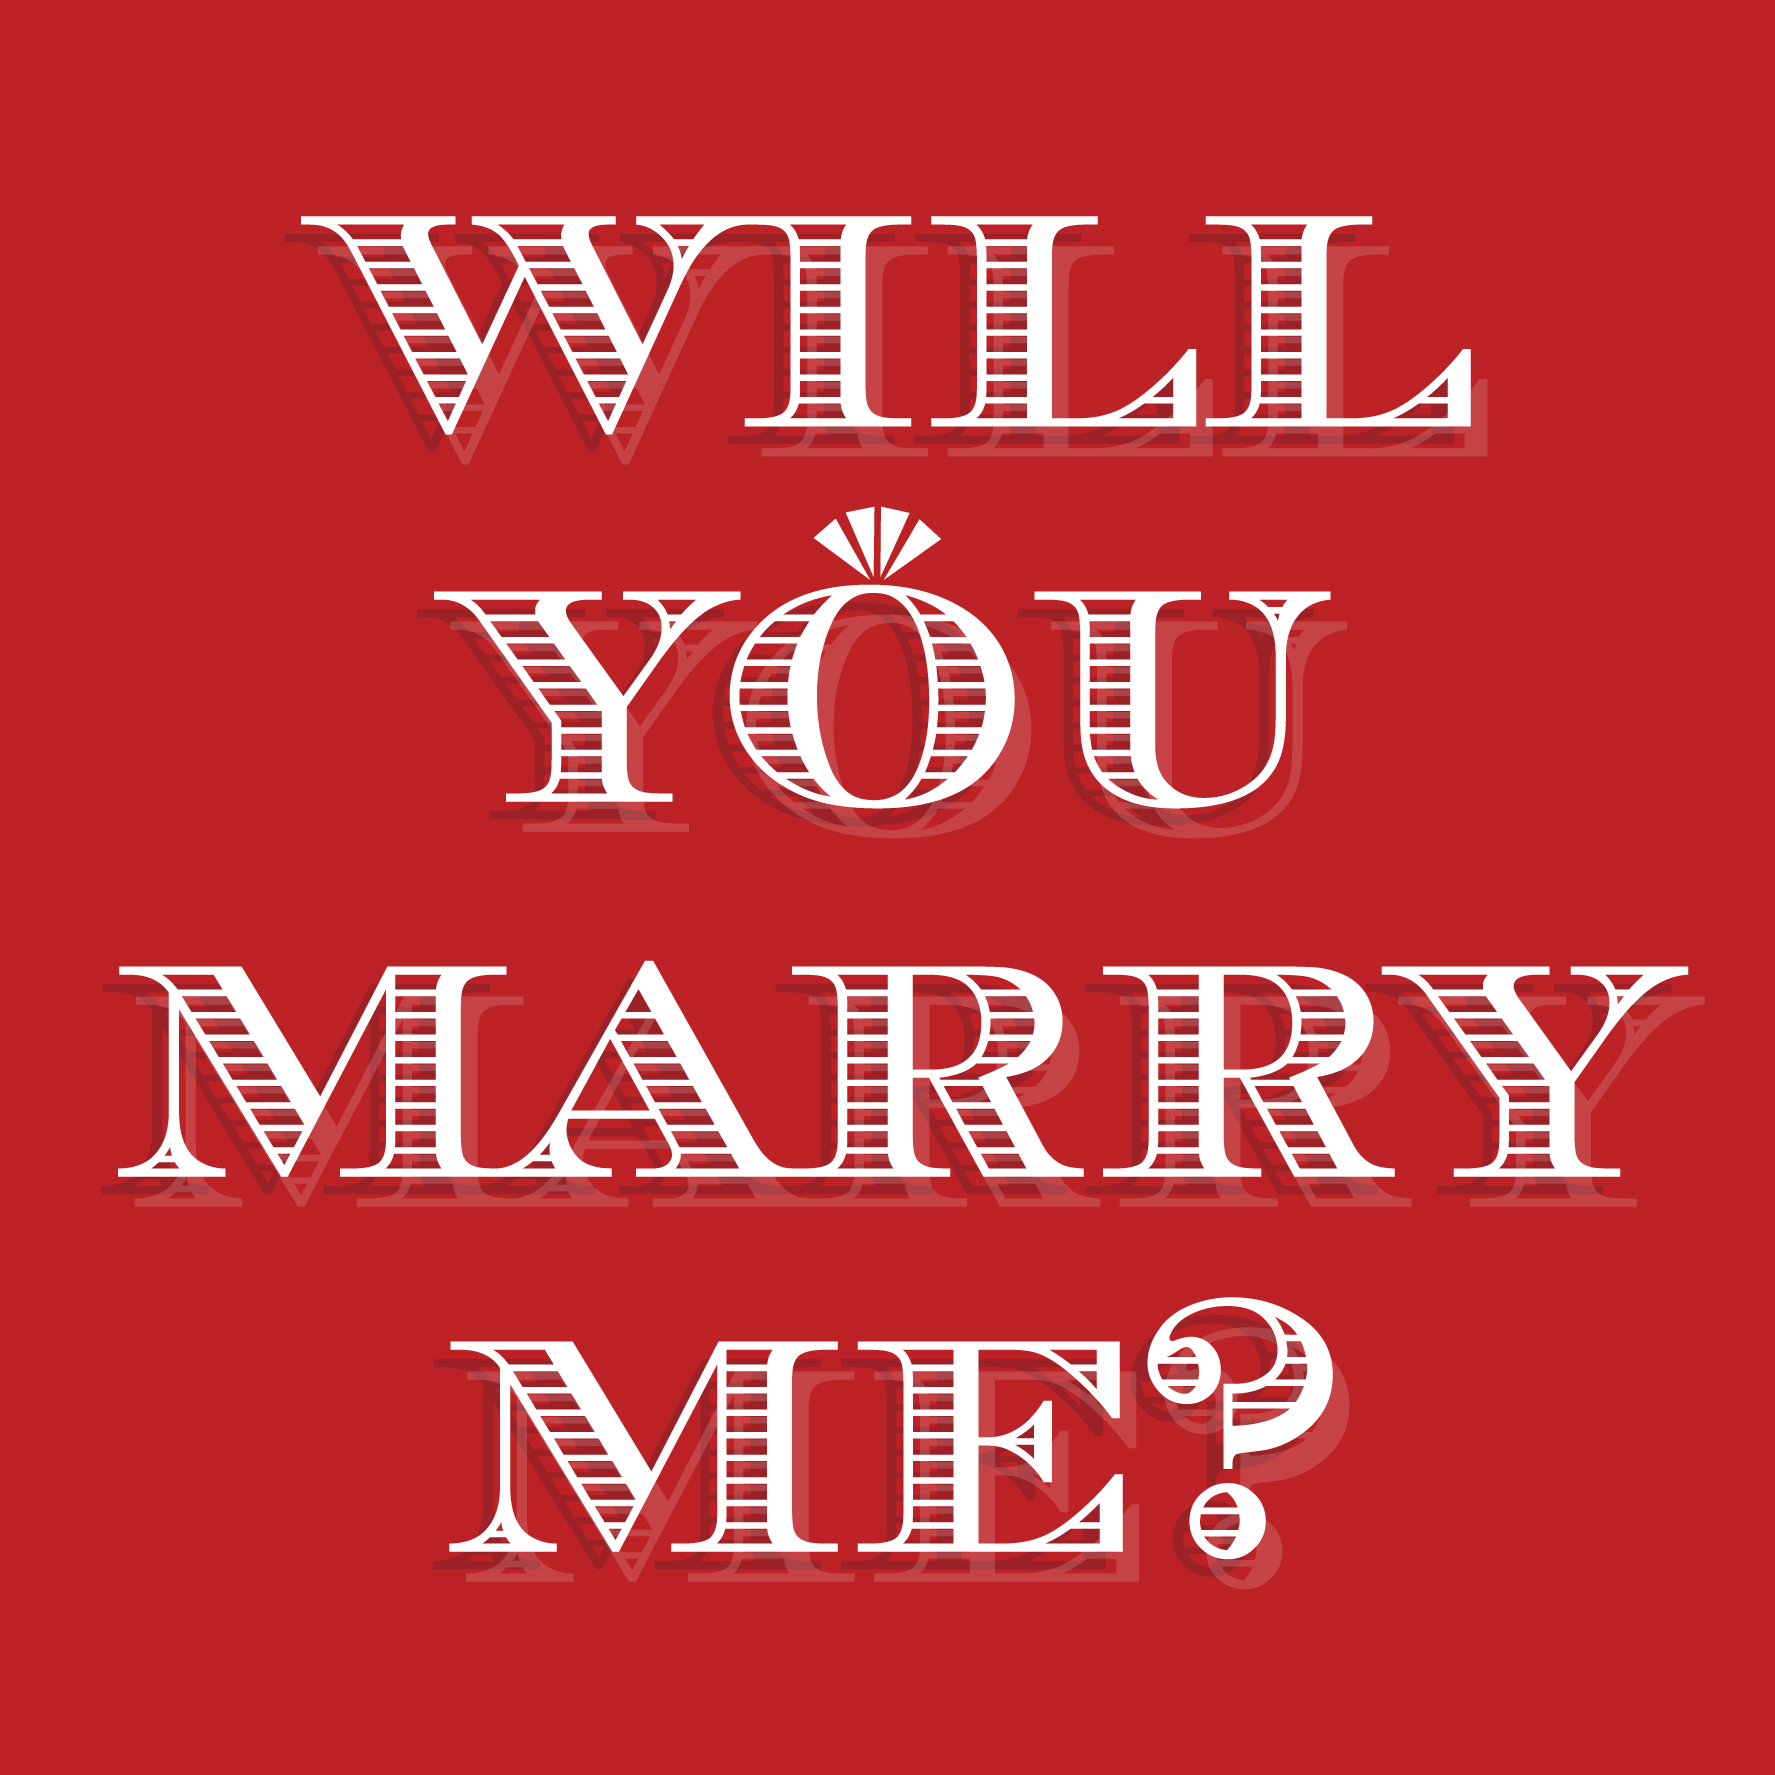 Will you marry me cards - The Proposers